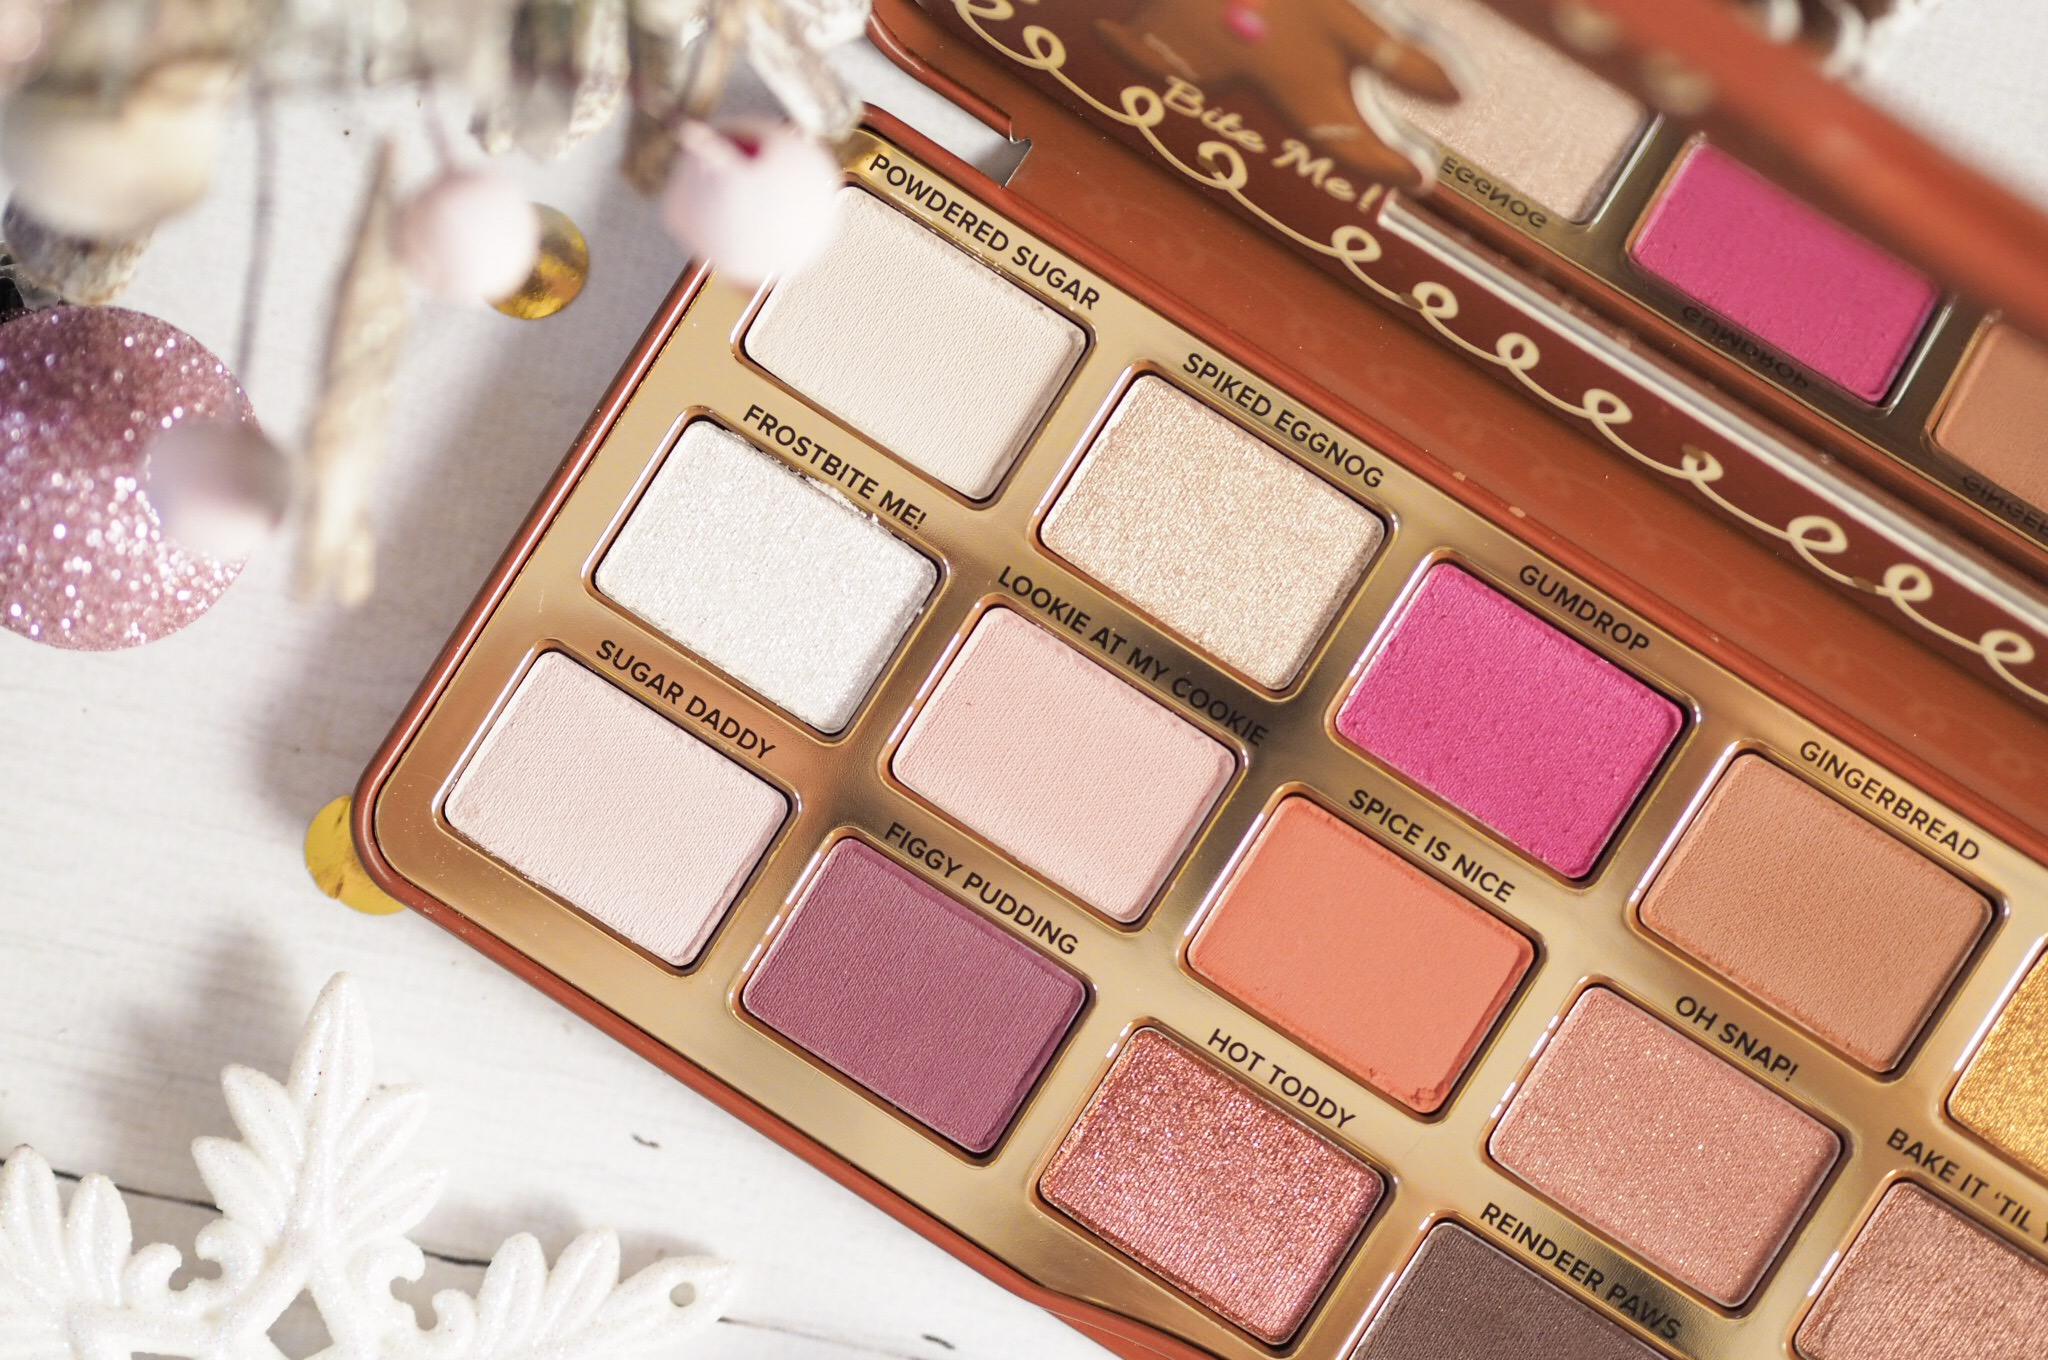 Too Faced Gingerbread Spice Palette Review